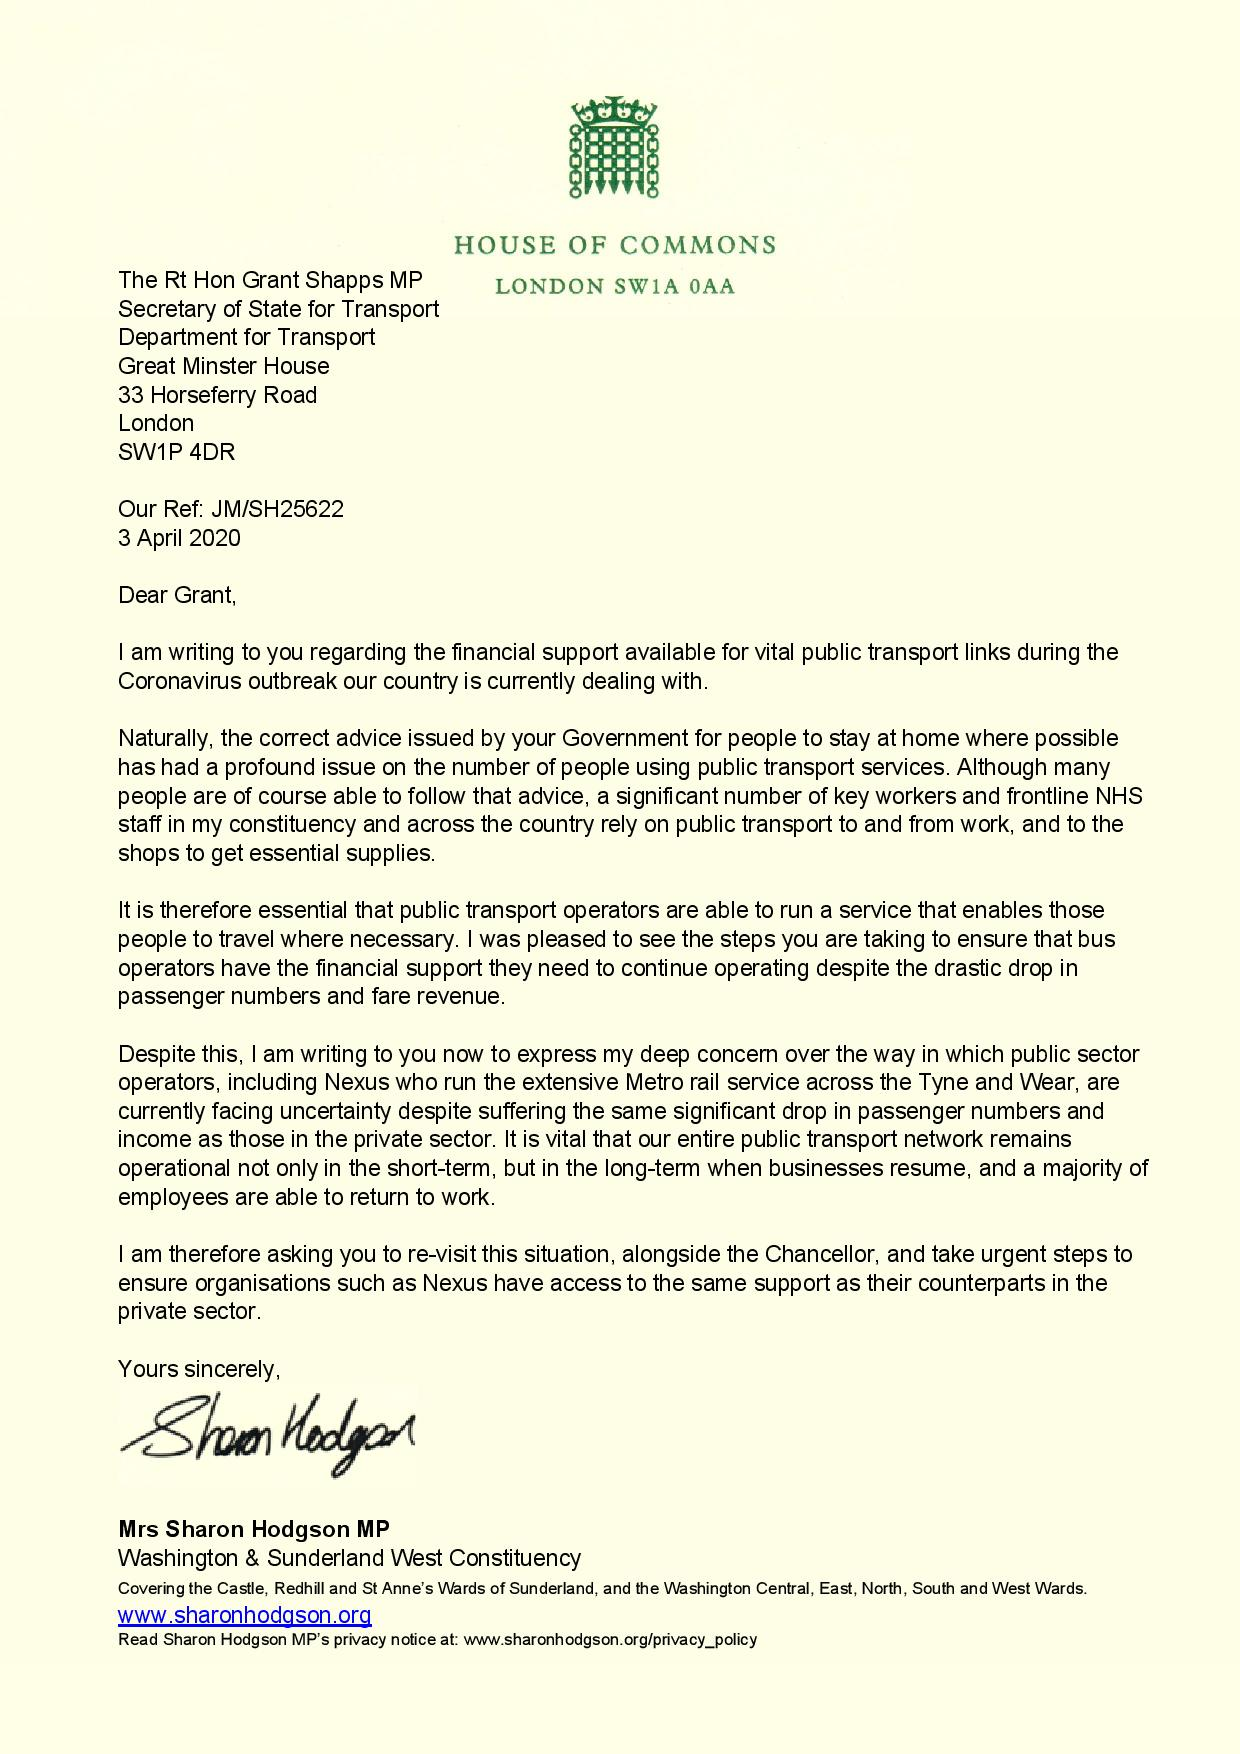 Letter_from_Sharon_Hodgson_MP_to_Grant_Shapps_MP-page-001.jpg